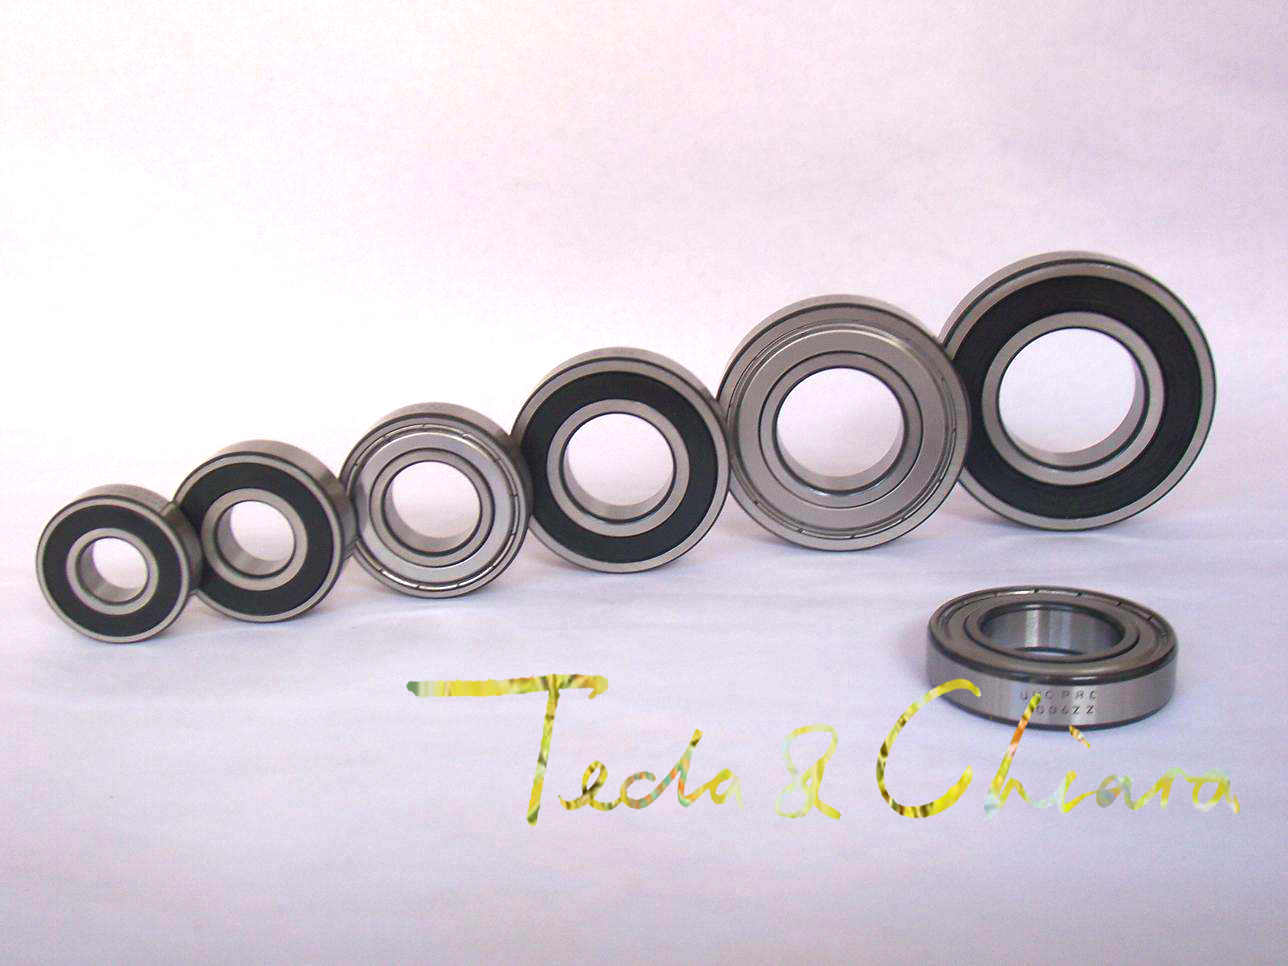 678RS 678ZZ MR128 MR128ZZ MR128RS MR128-2Z MR128-2RS 678 ZZ RS RZ 2RZ Deep Groove Ball Bearings 8 x 12 x 3.5mm High Quality free shipping 25x47x12mm deep groove ball bearings 6005 zz 2z 6005zz bearing 6005zz 6005 2rs